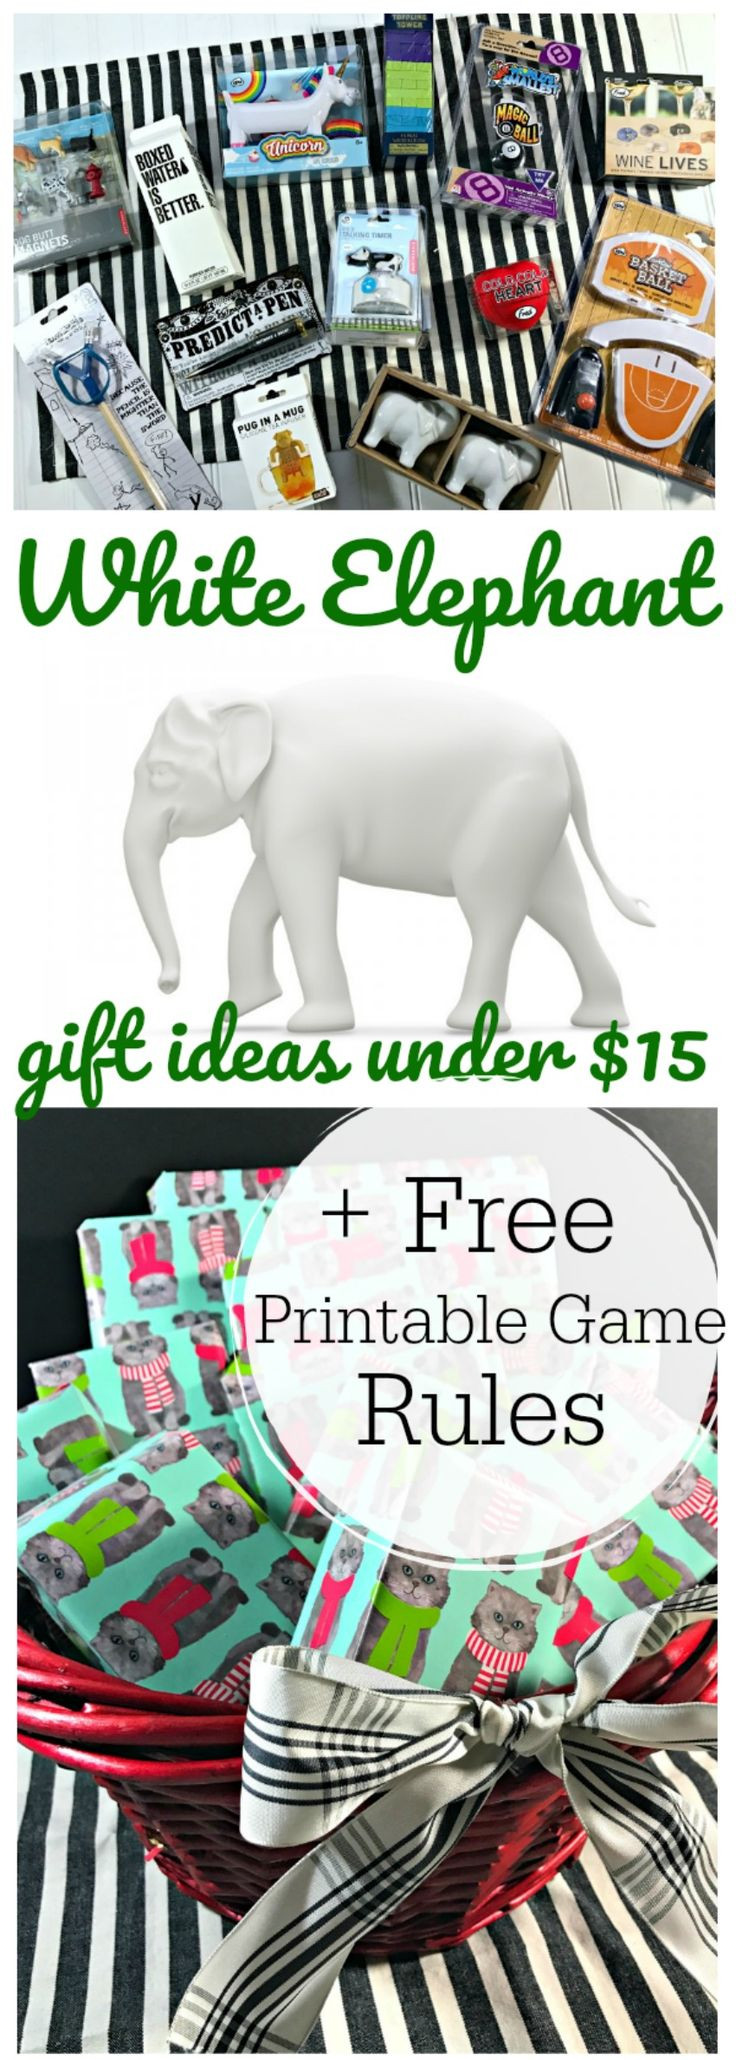 Best ideas about Gift Ideas Under $15 . Save or Pin Best 25 White elephant rules ideas on Pinterest Now.